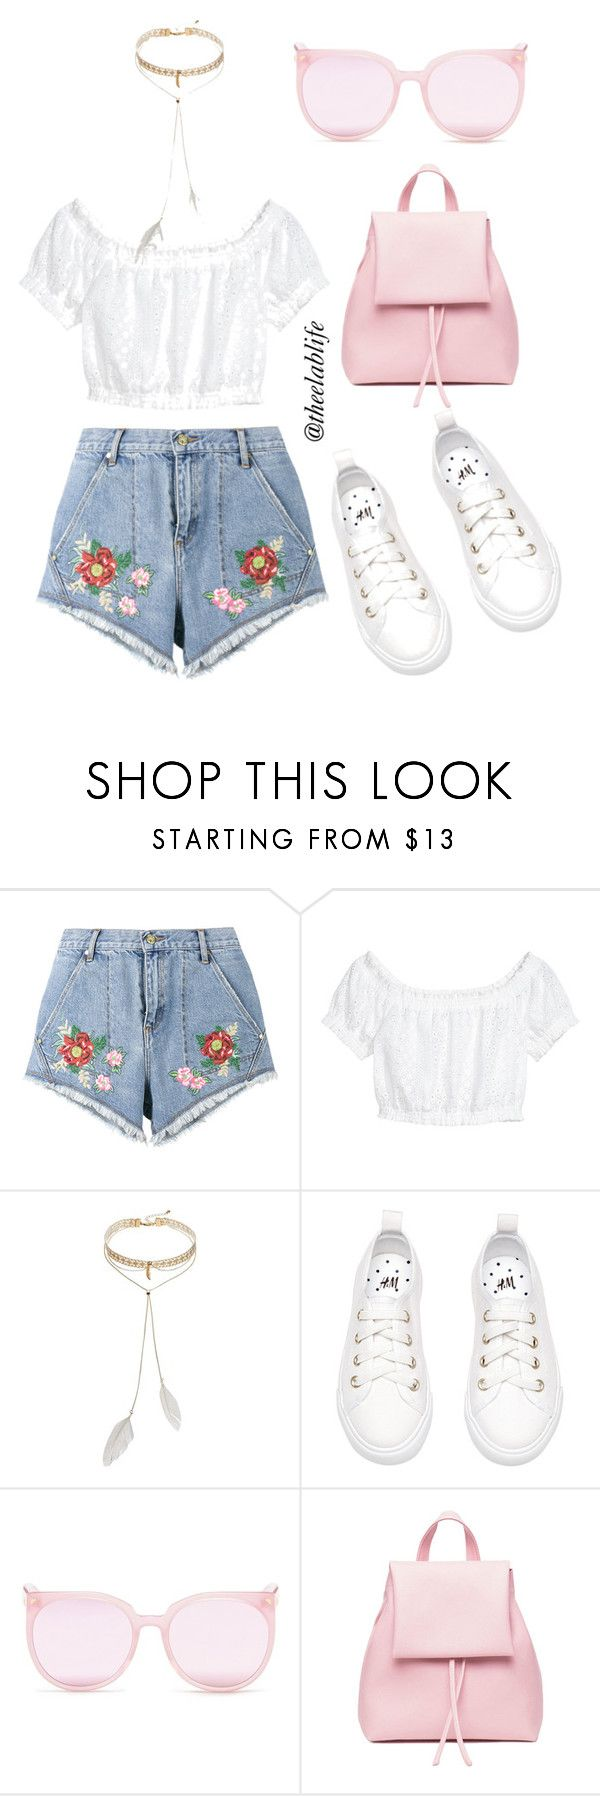 """Festival"" by theelablife on Polyvore featuring House of Holland, Bølo, Stephane + Christian, Boo, houseofholland, kohls, BOOMiniBoo and StephaneAndChristian"